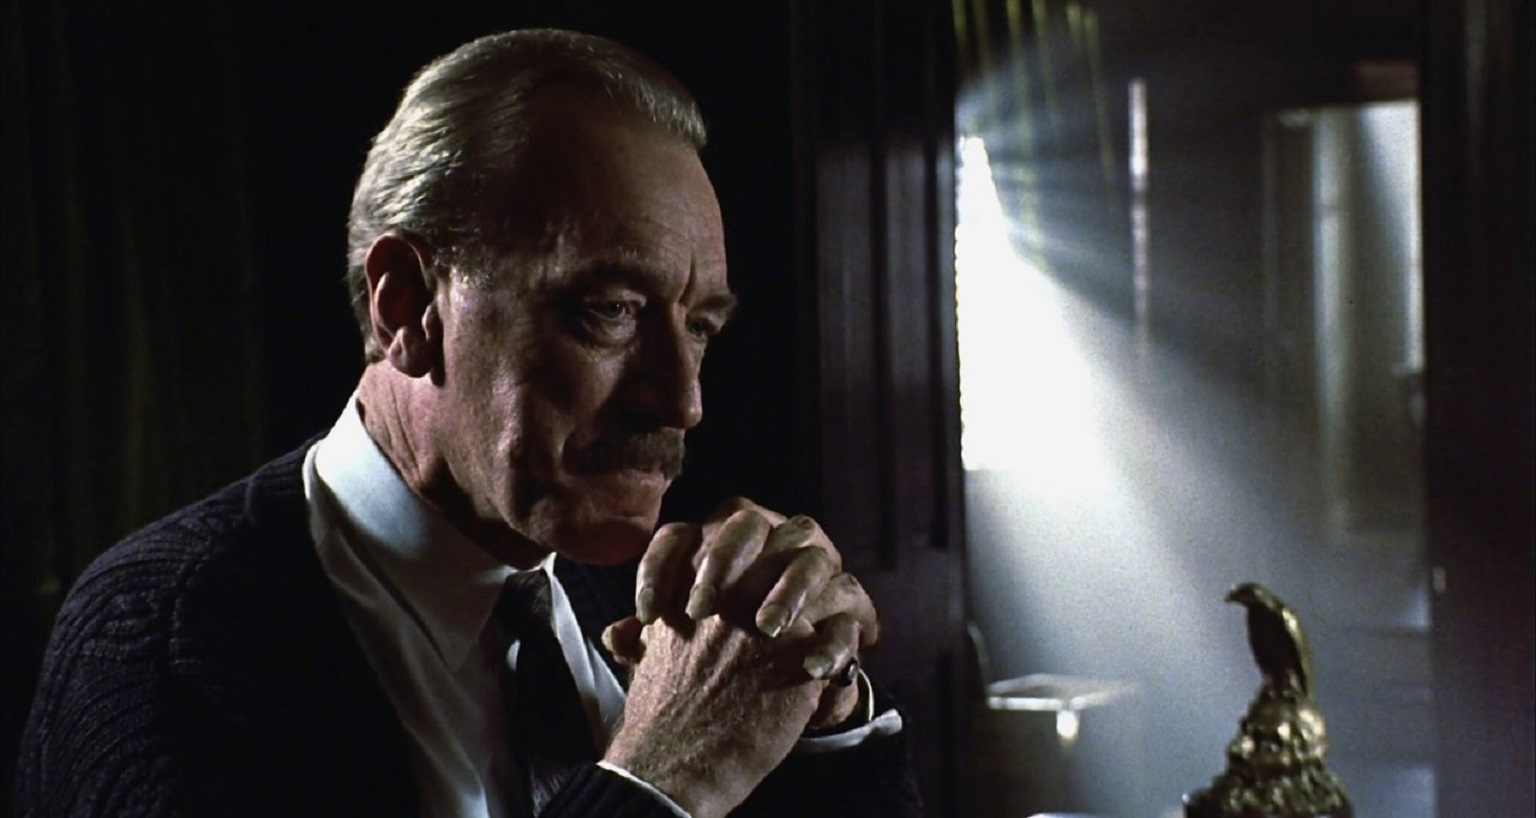 Max Von Sydow as Leland Gaunt in Needful Things (1993)